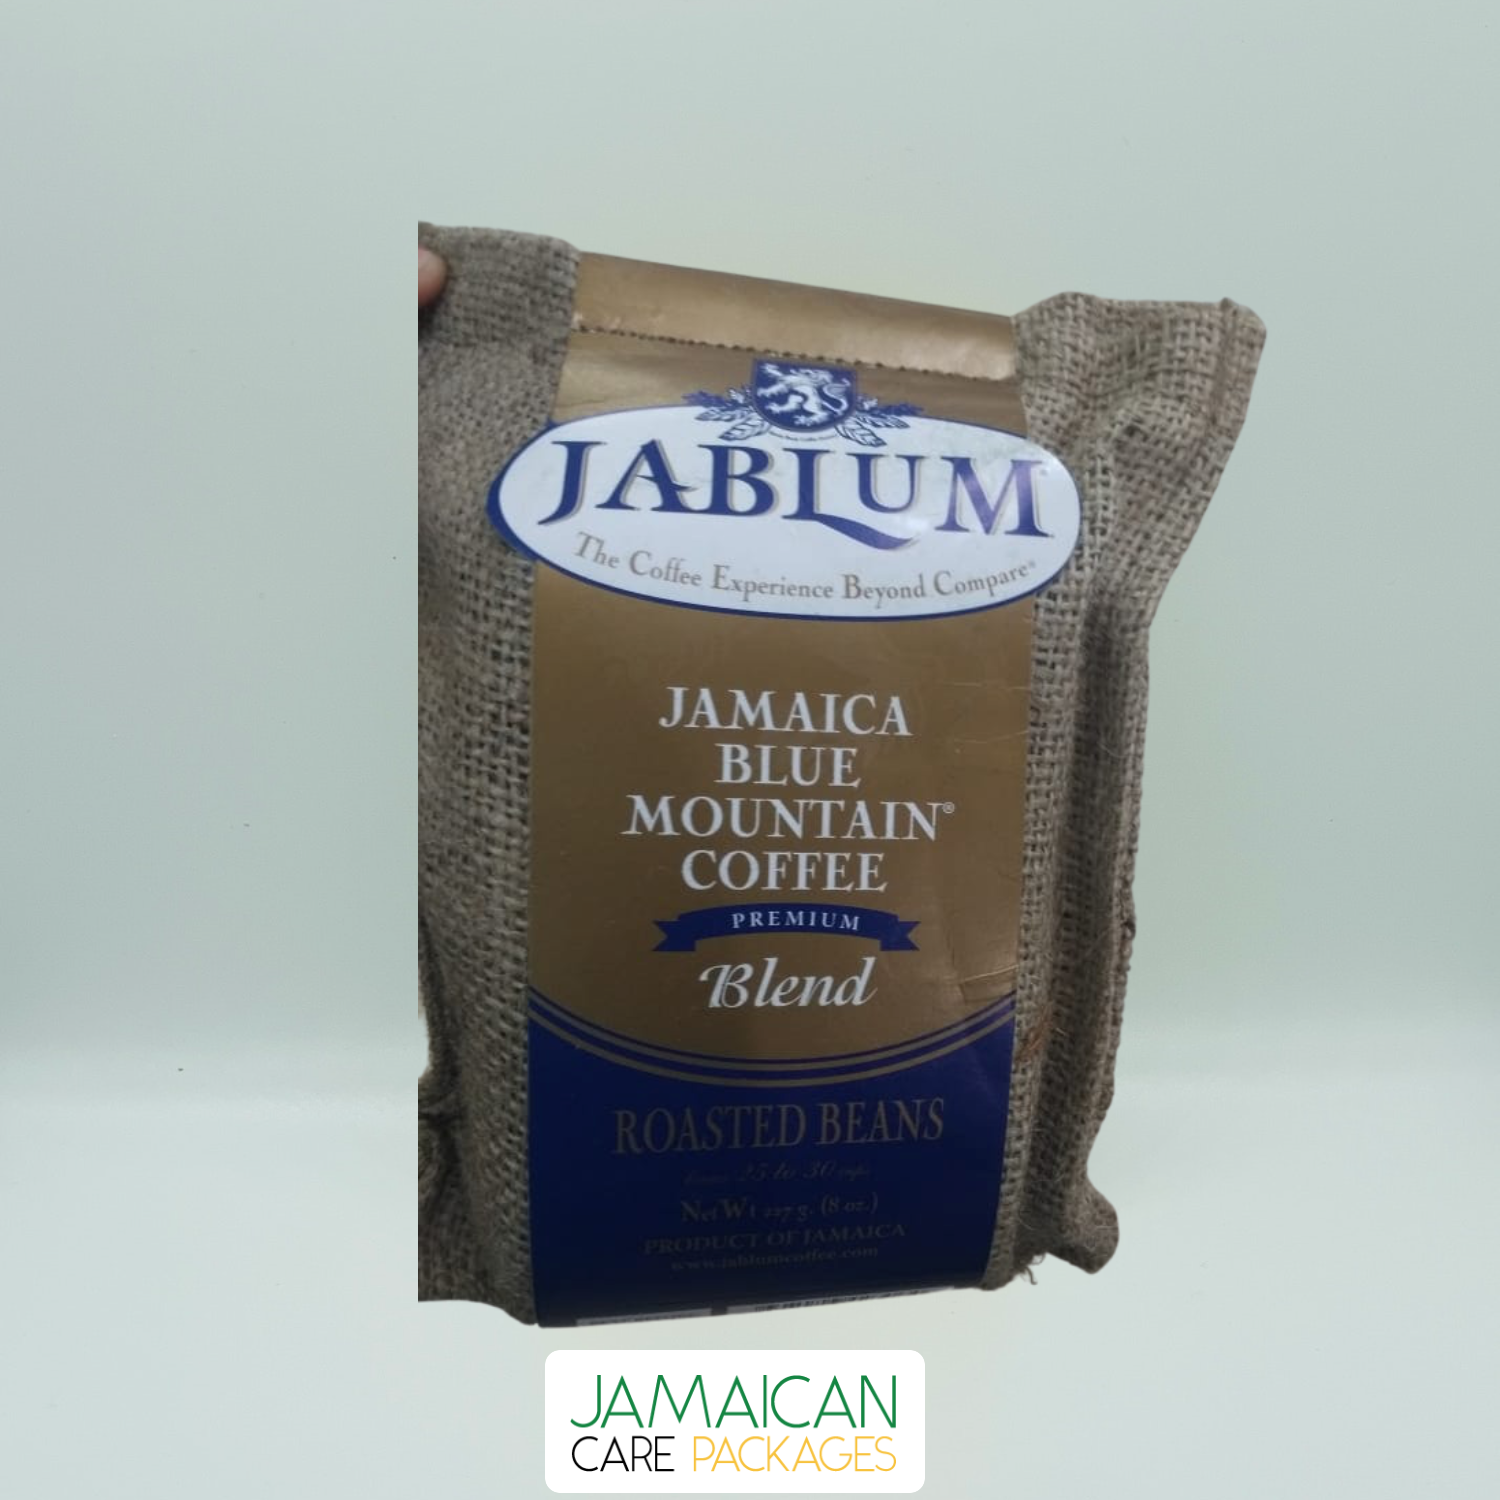 Jablum - Jamaica Blue Mountain Coffee - Premium Blend - Roasted & Ground Beans - 227g